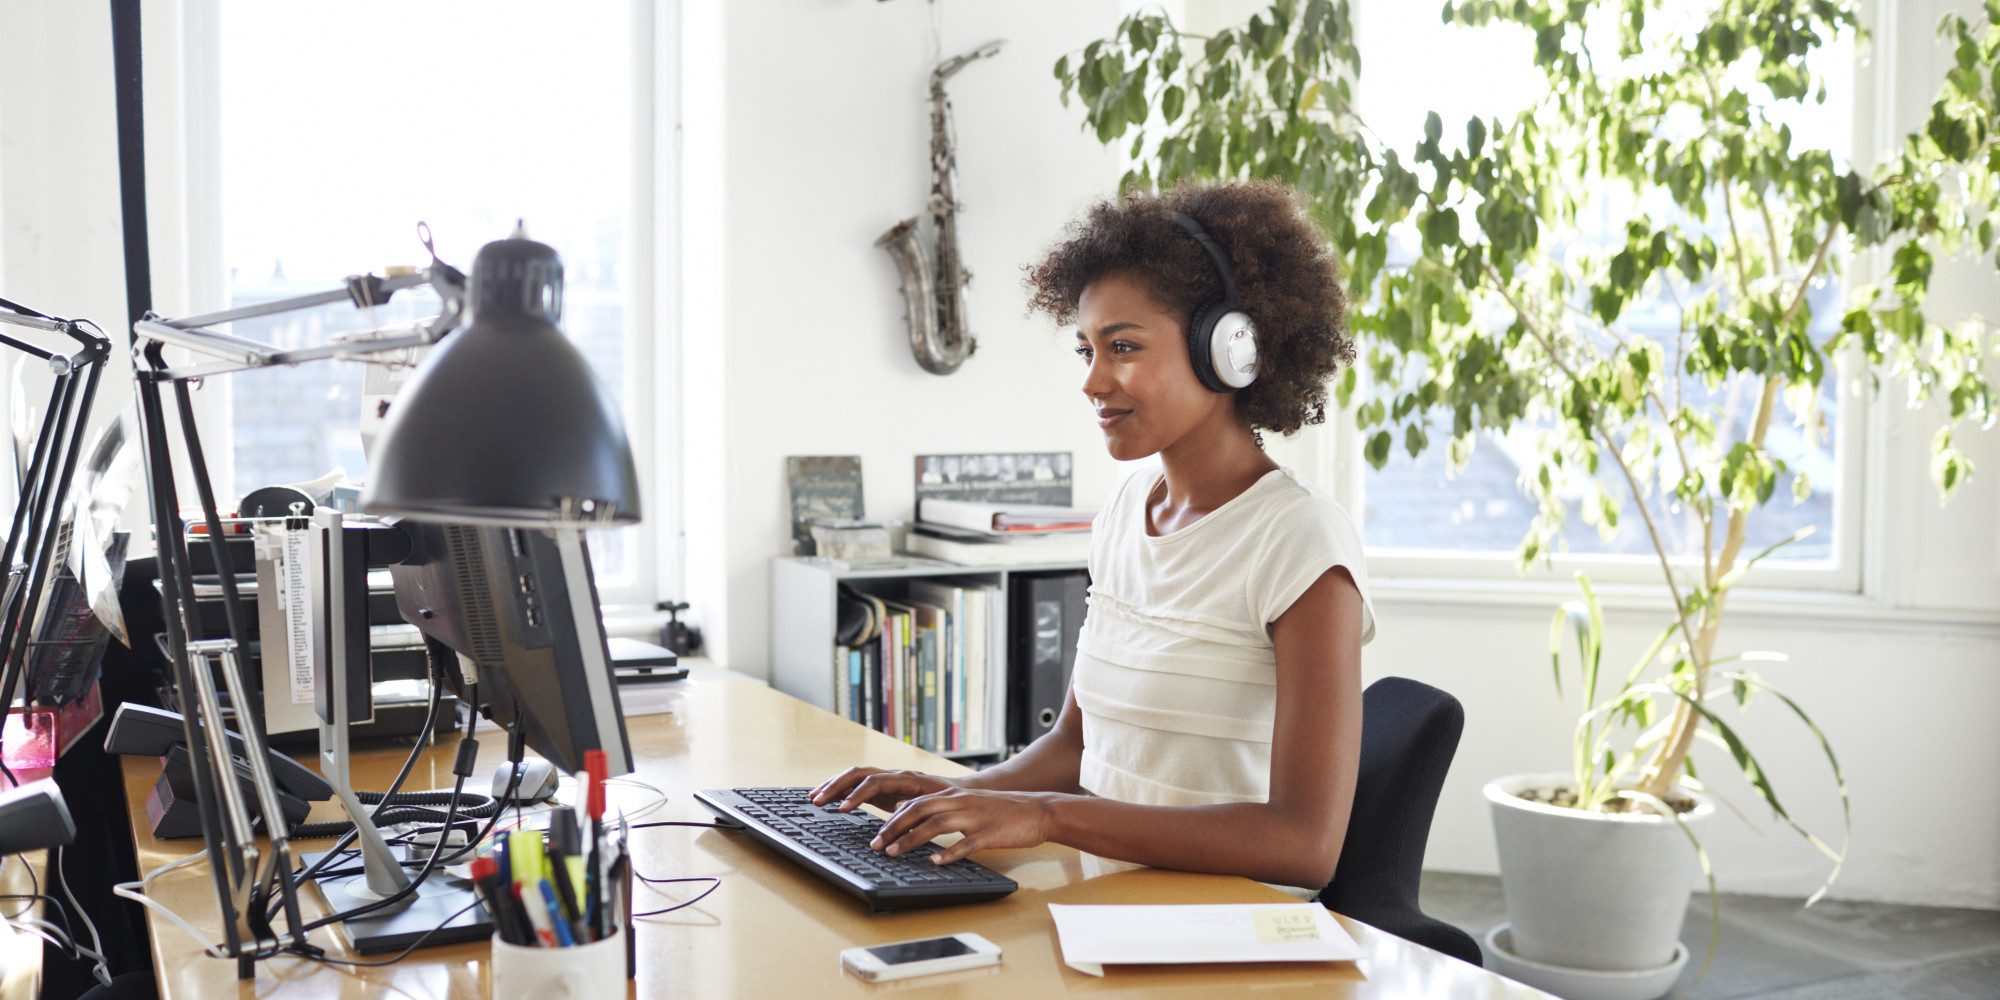 Businesswoman with headphones typing on keyboard